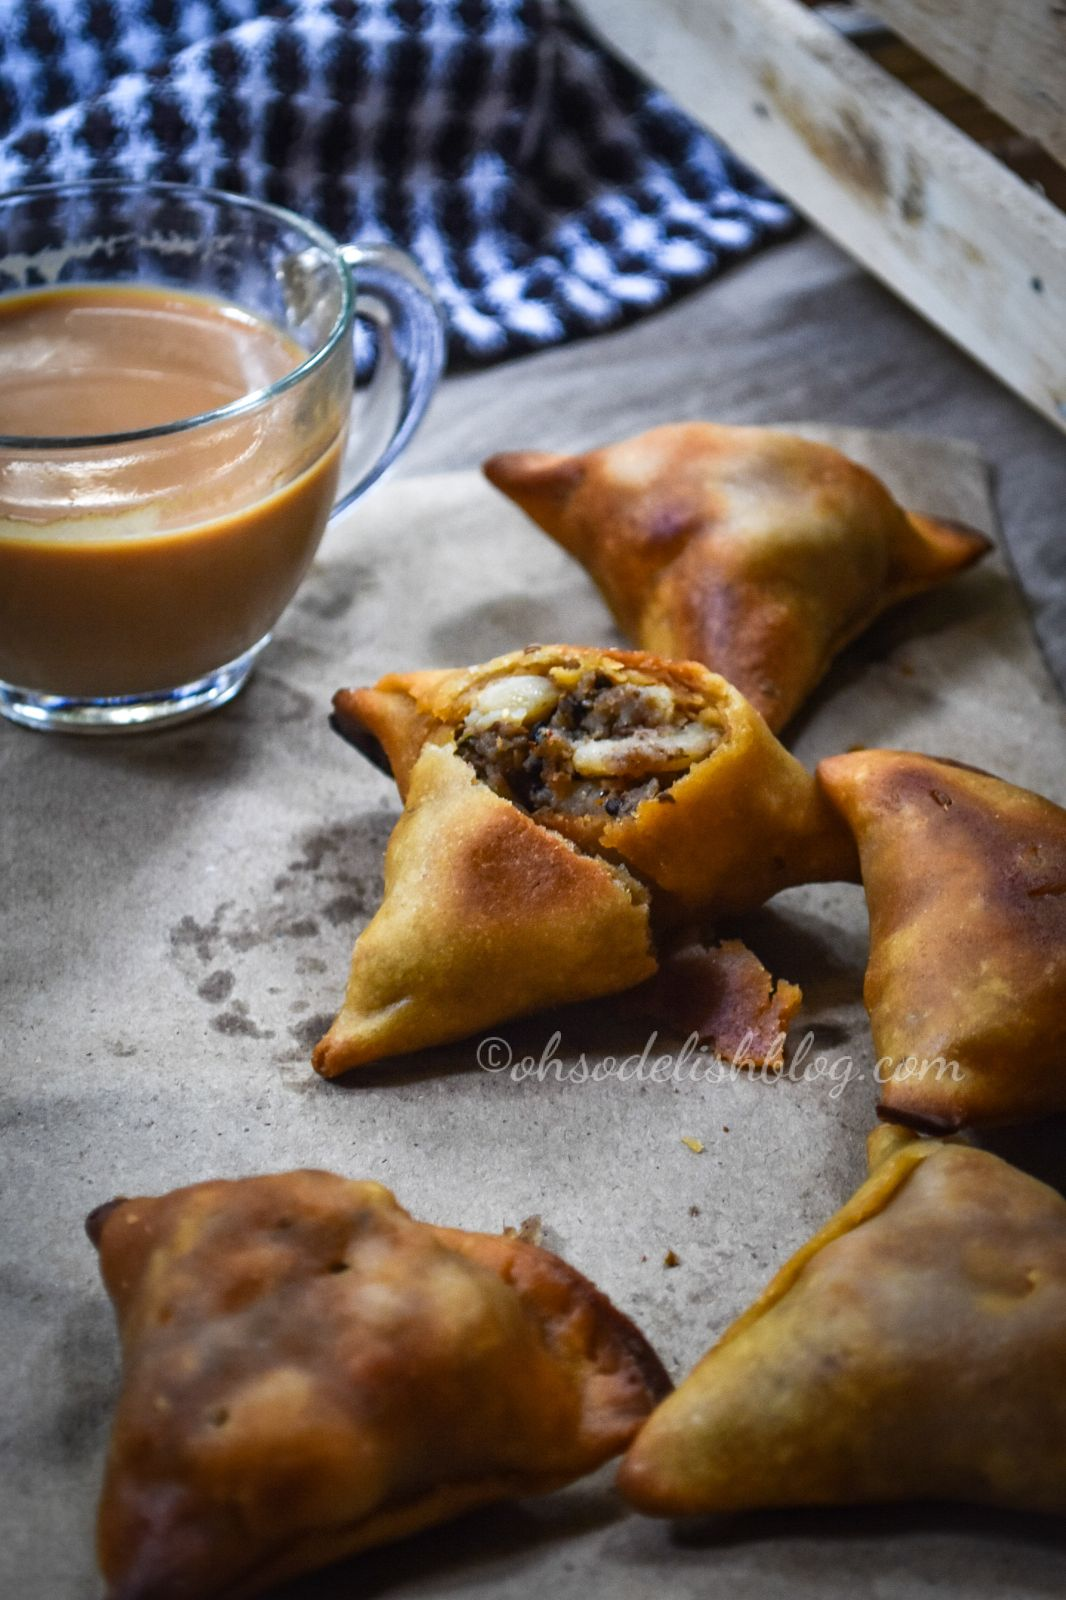 Baked Bengali style samosa made with wholewheat and stuffed with potatoes